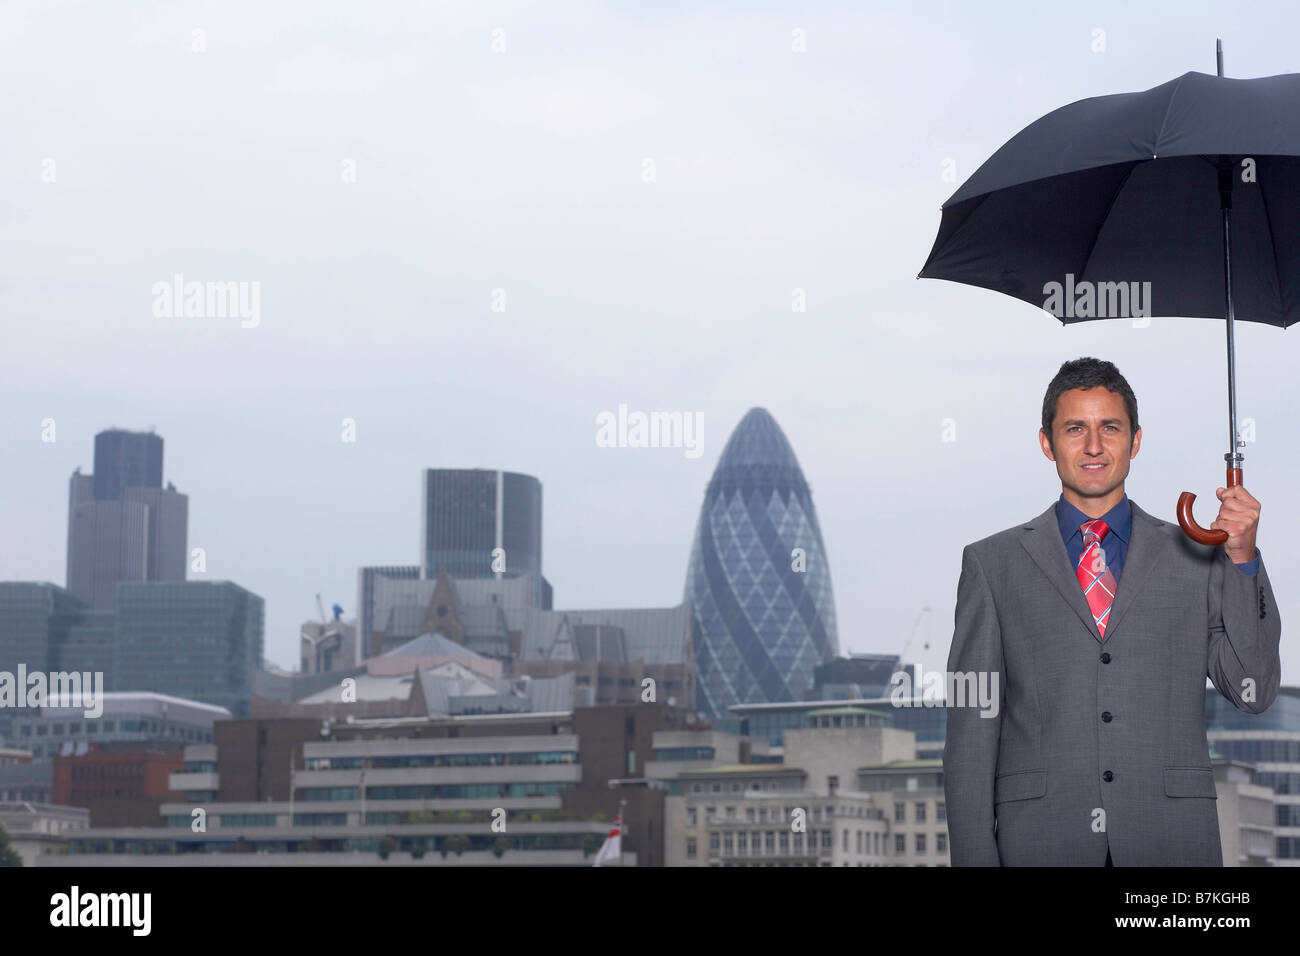 Mann with umbrella city scape - Stock Image